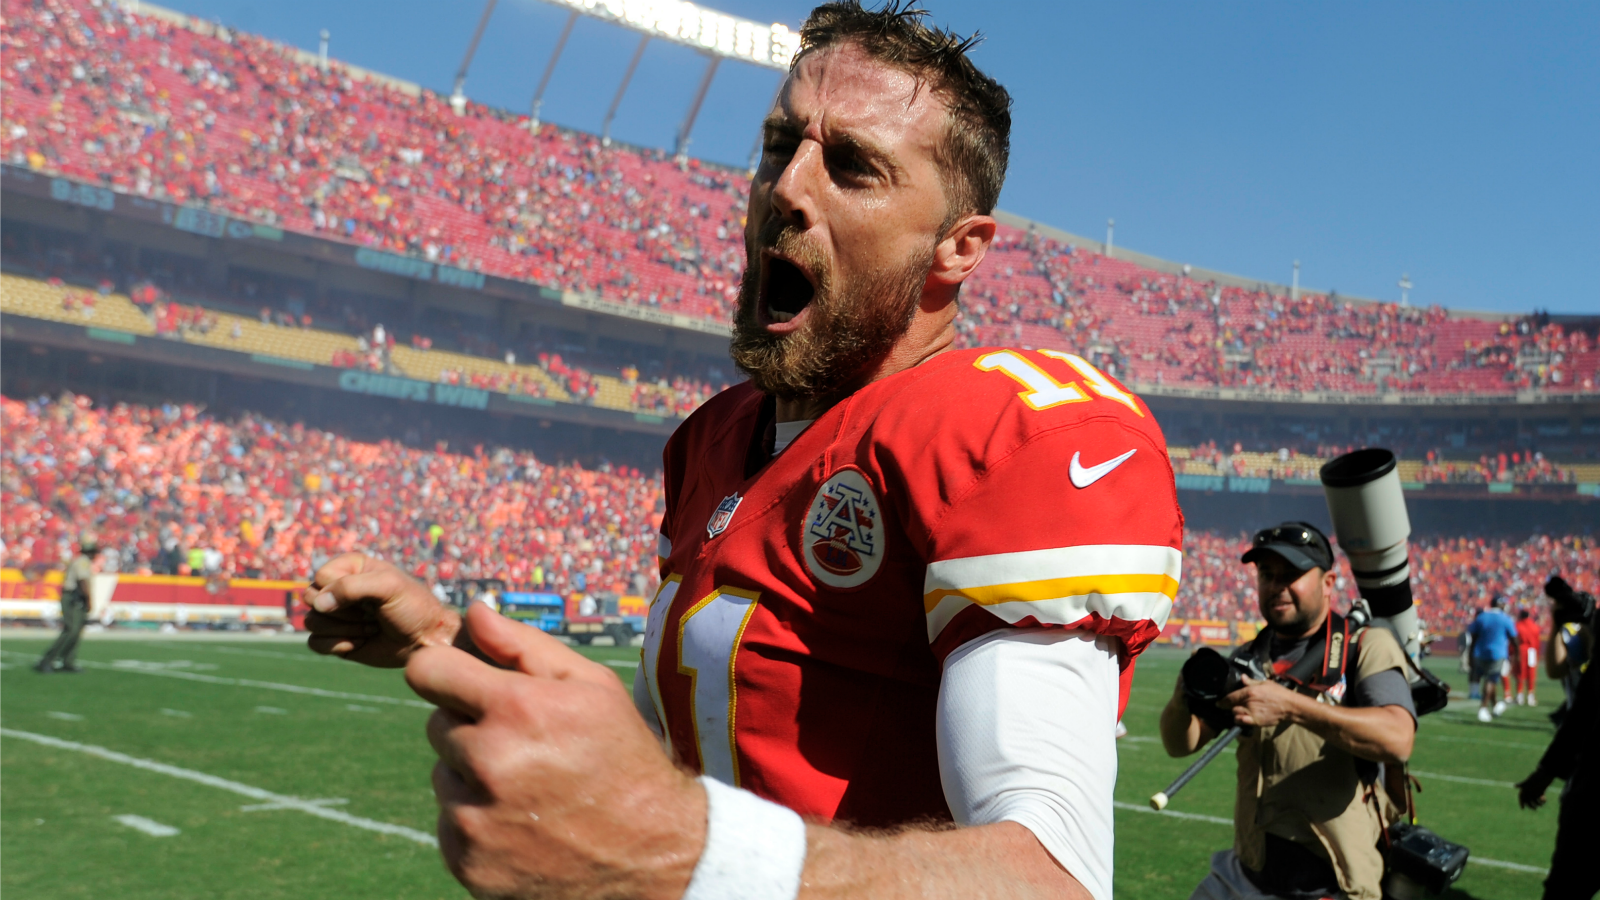 Alex Smith's OT TD dive finishes Chiefs' amazing comeback vs. Chargers